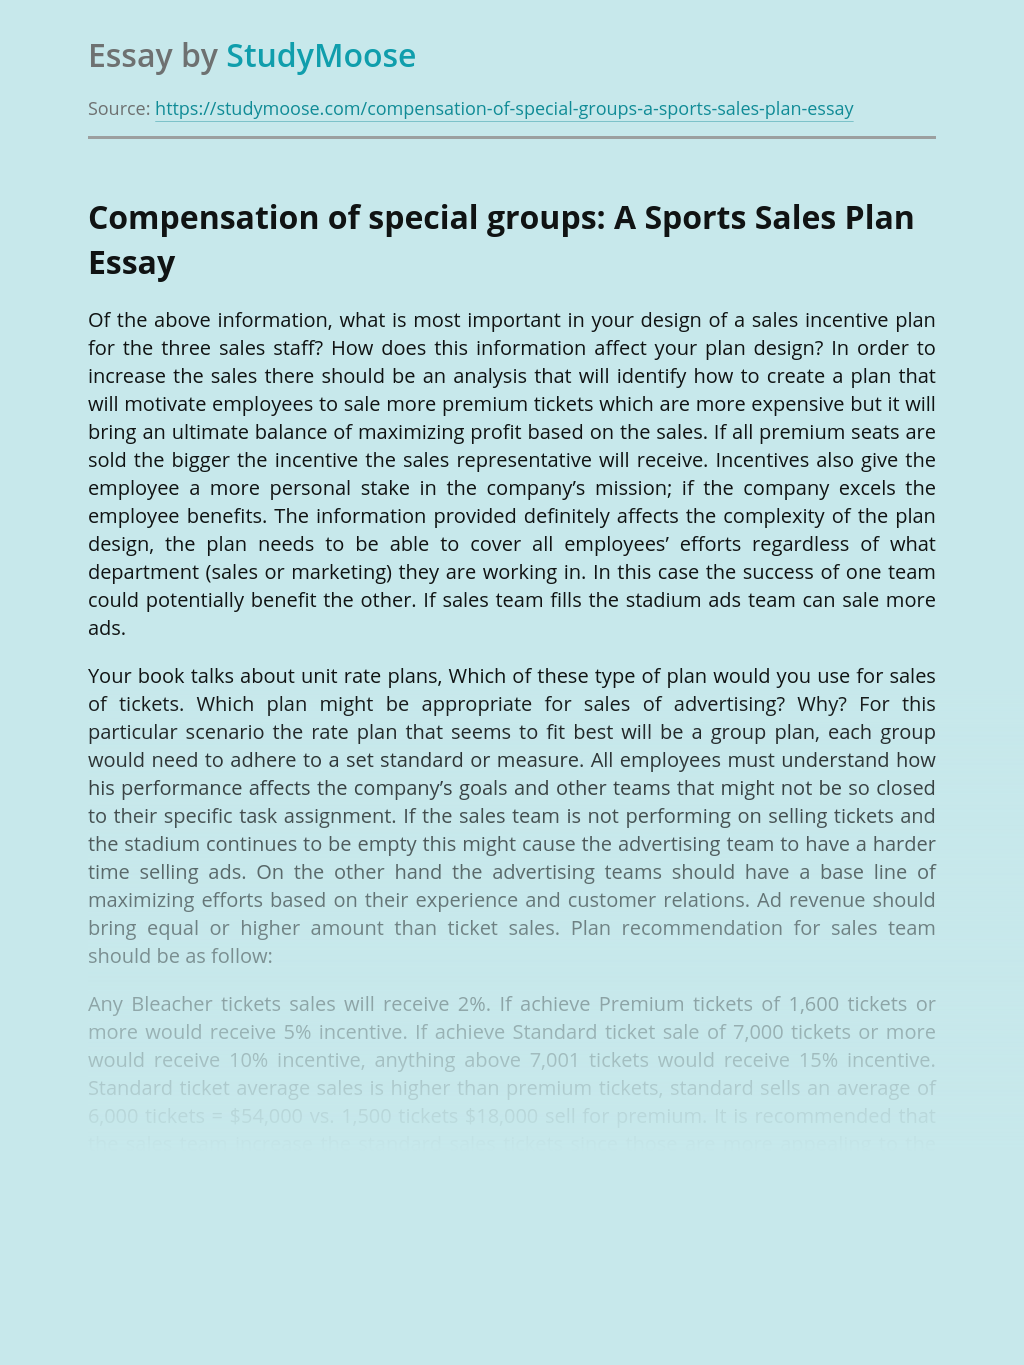 Compensation of special groups: A Sports Sales Plan